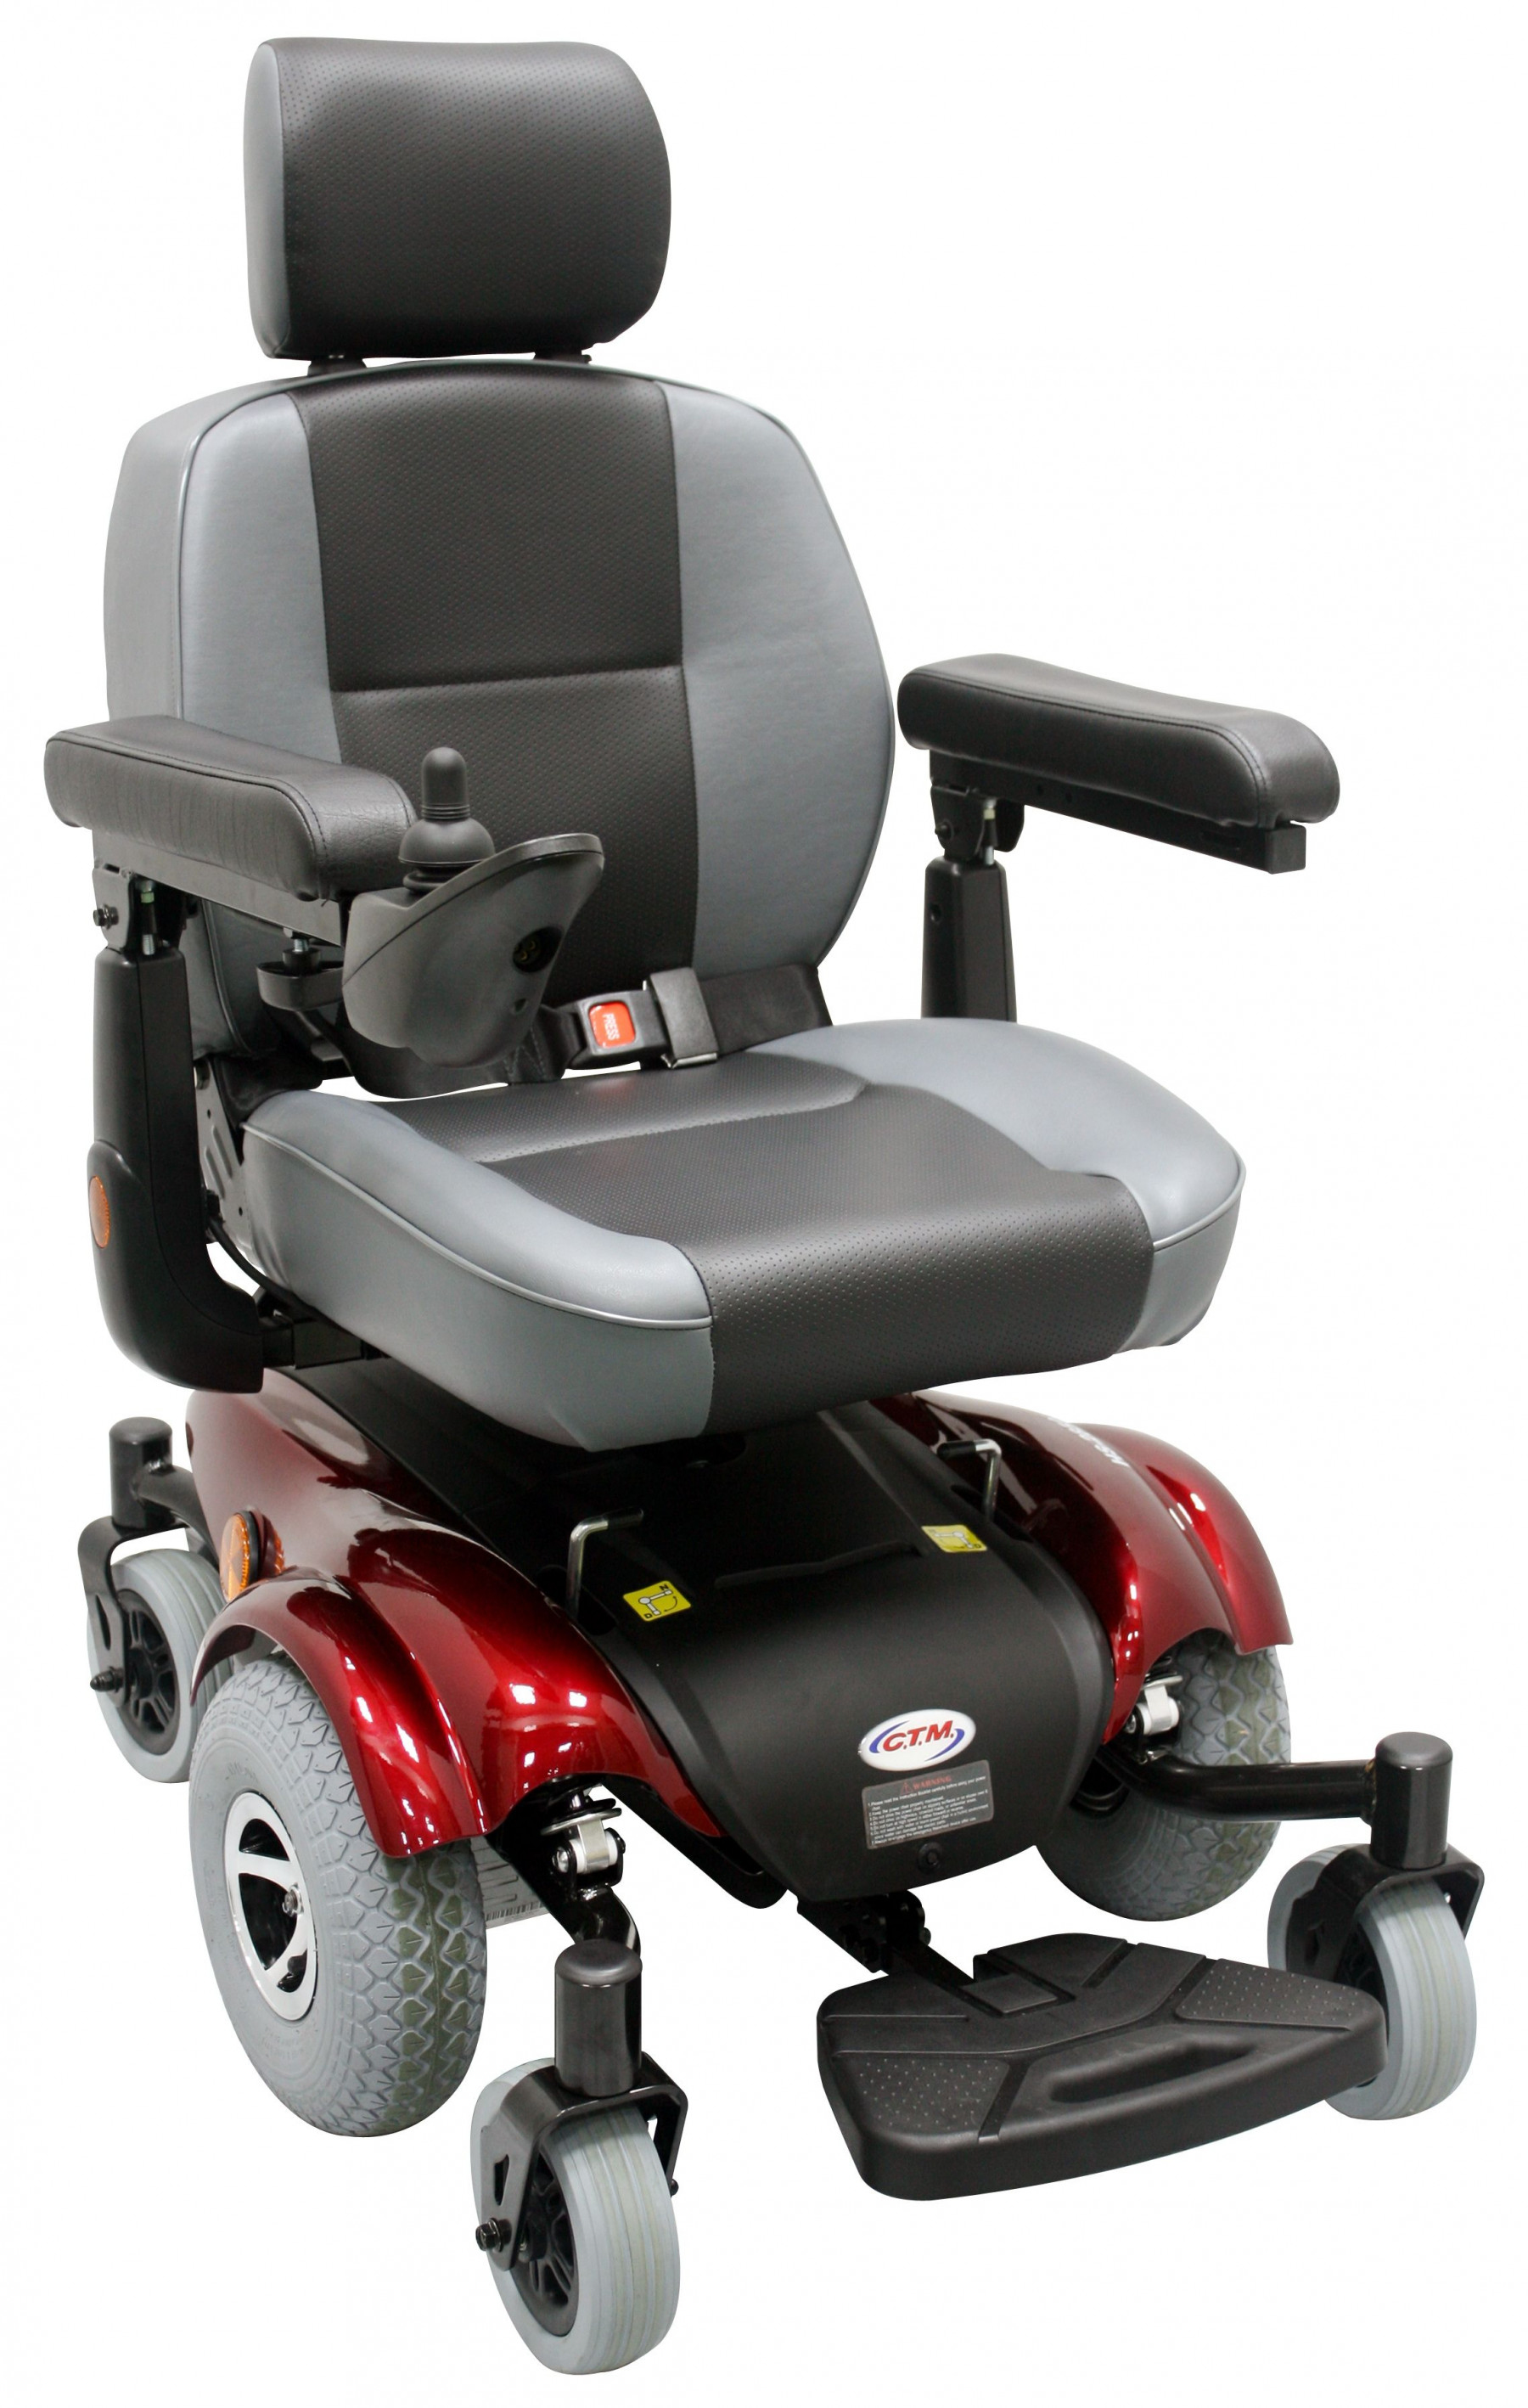 power chair accessories bags glider cushions replacement ctm hs 2850 wheelchair for sale lowest prices tax